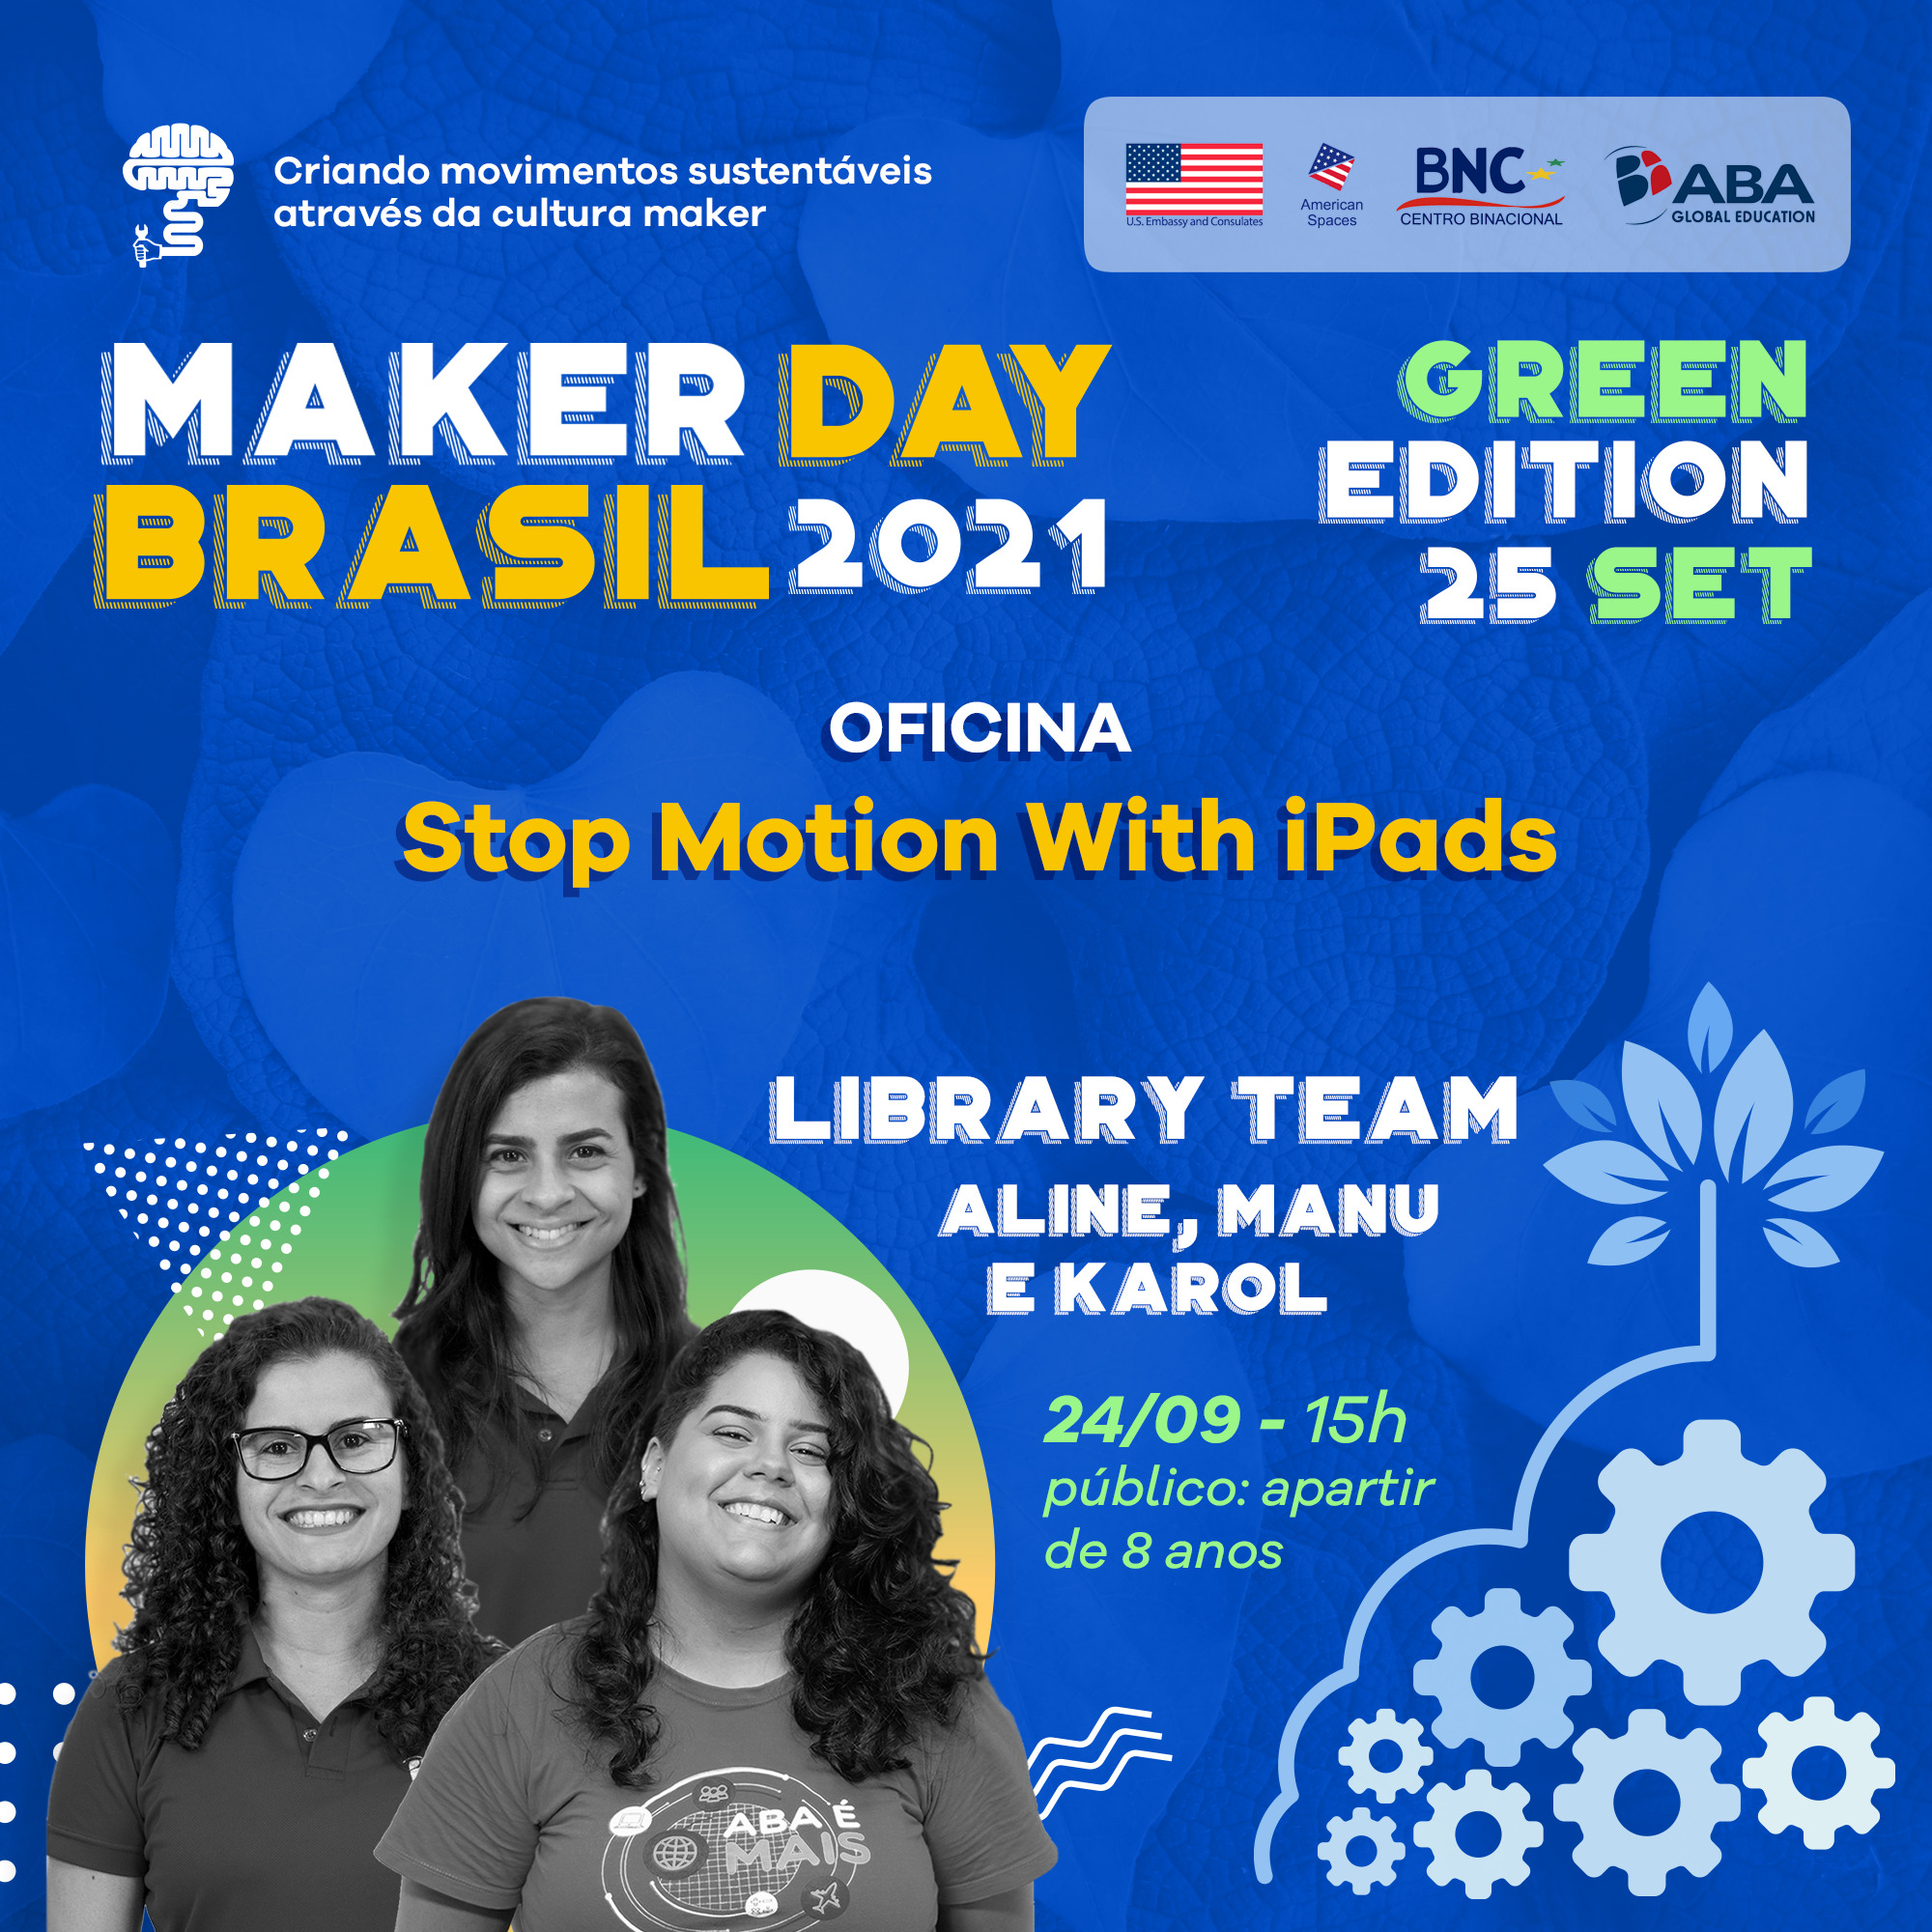 Recife - Stop motion with ipads